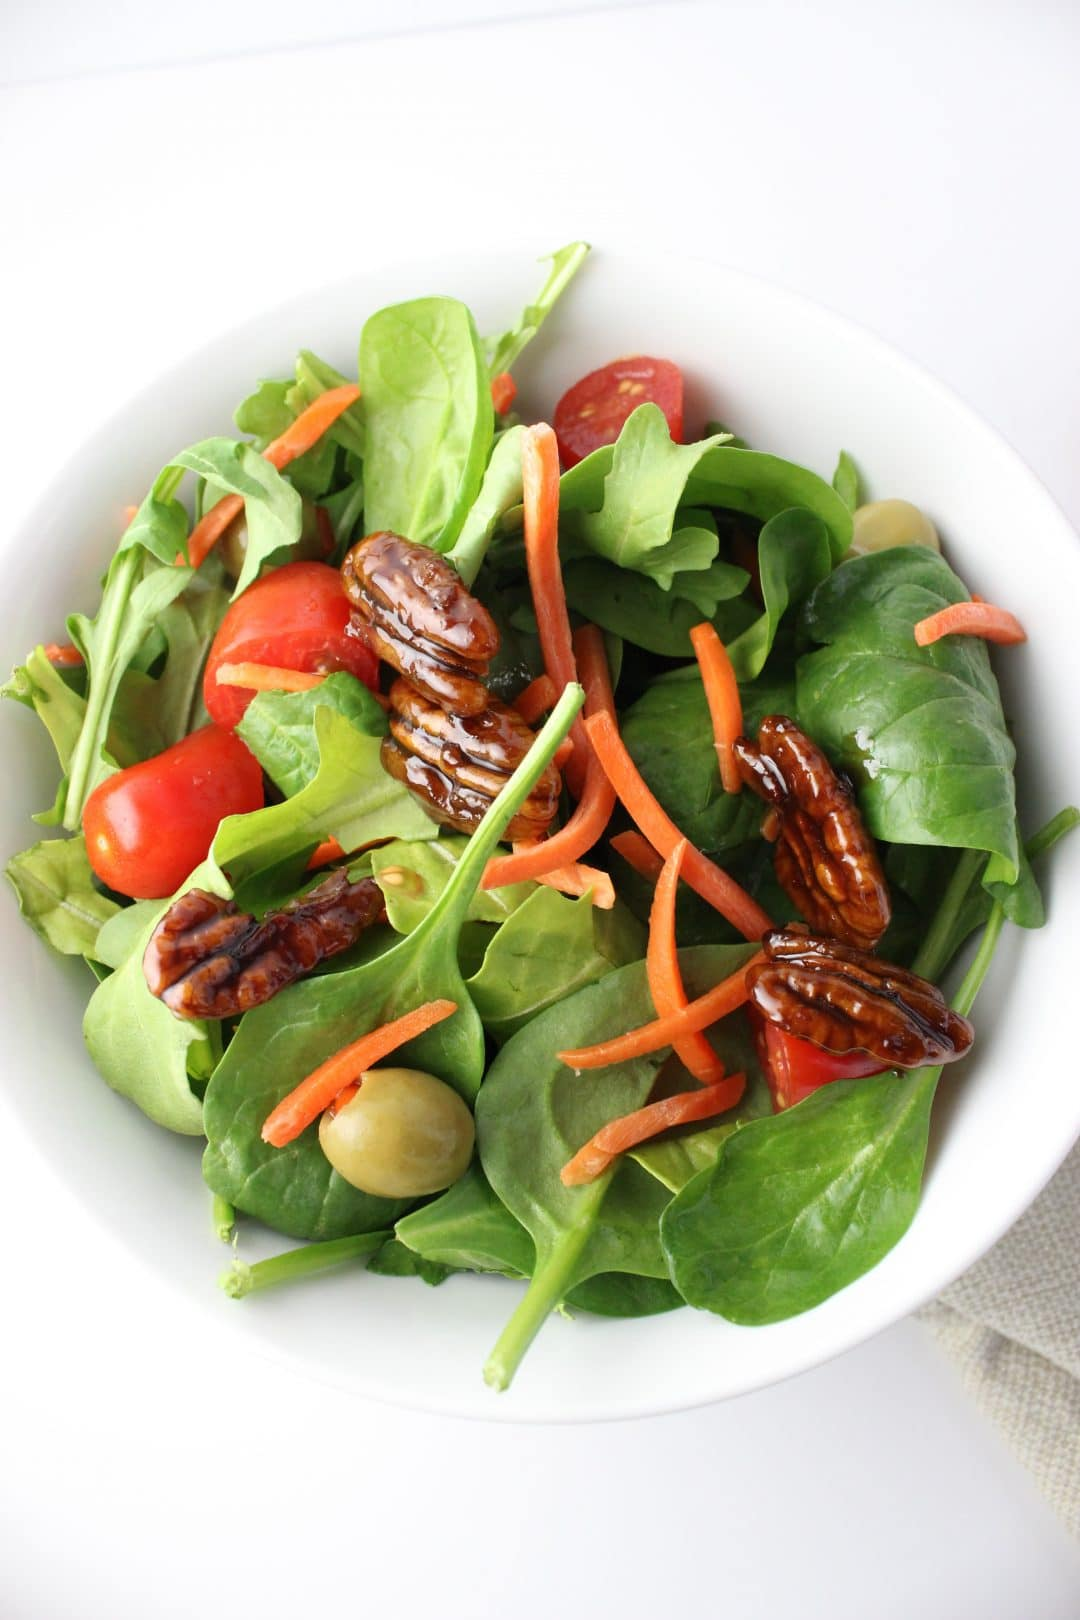 Coconut Sugar Candied Pecans on a Salad